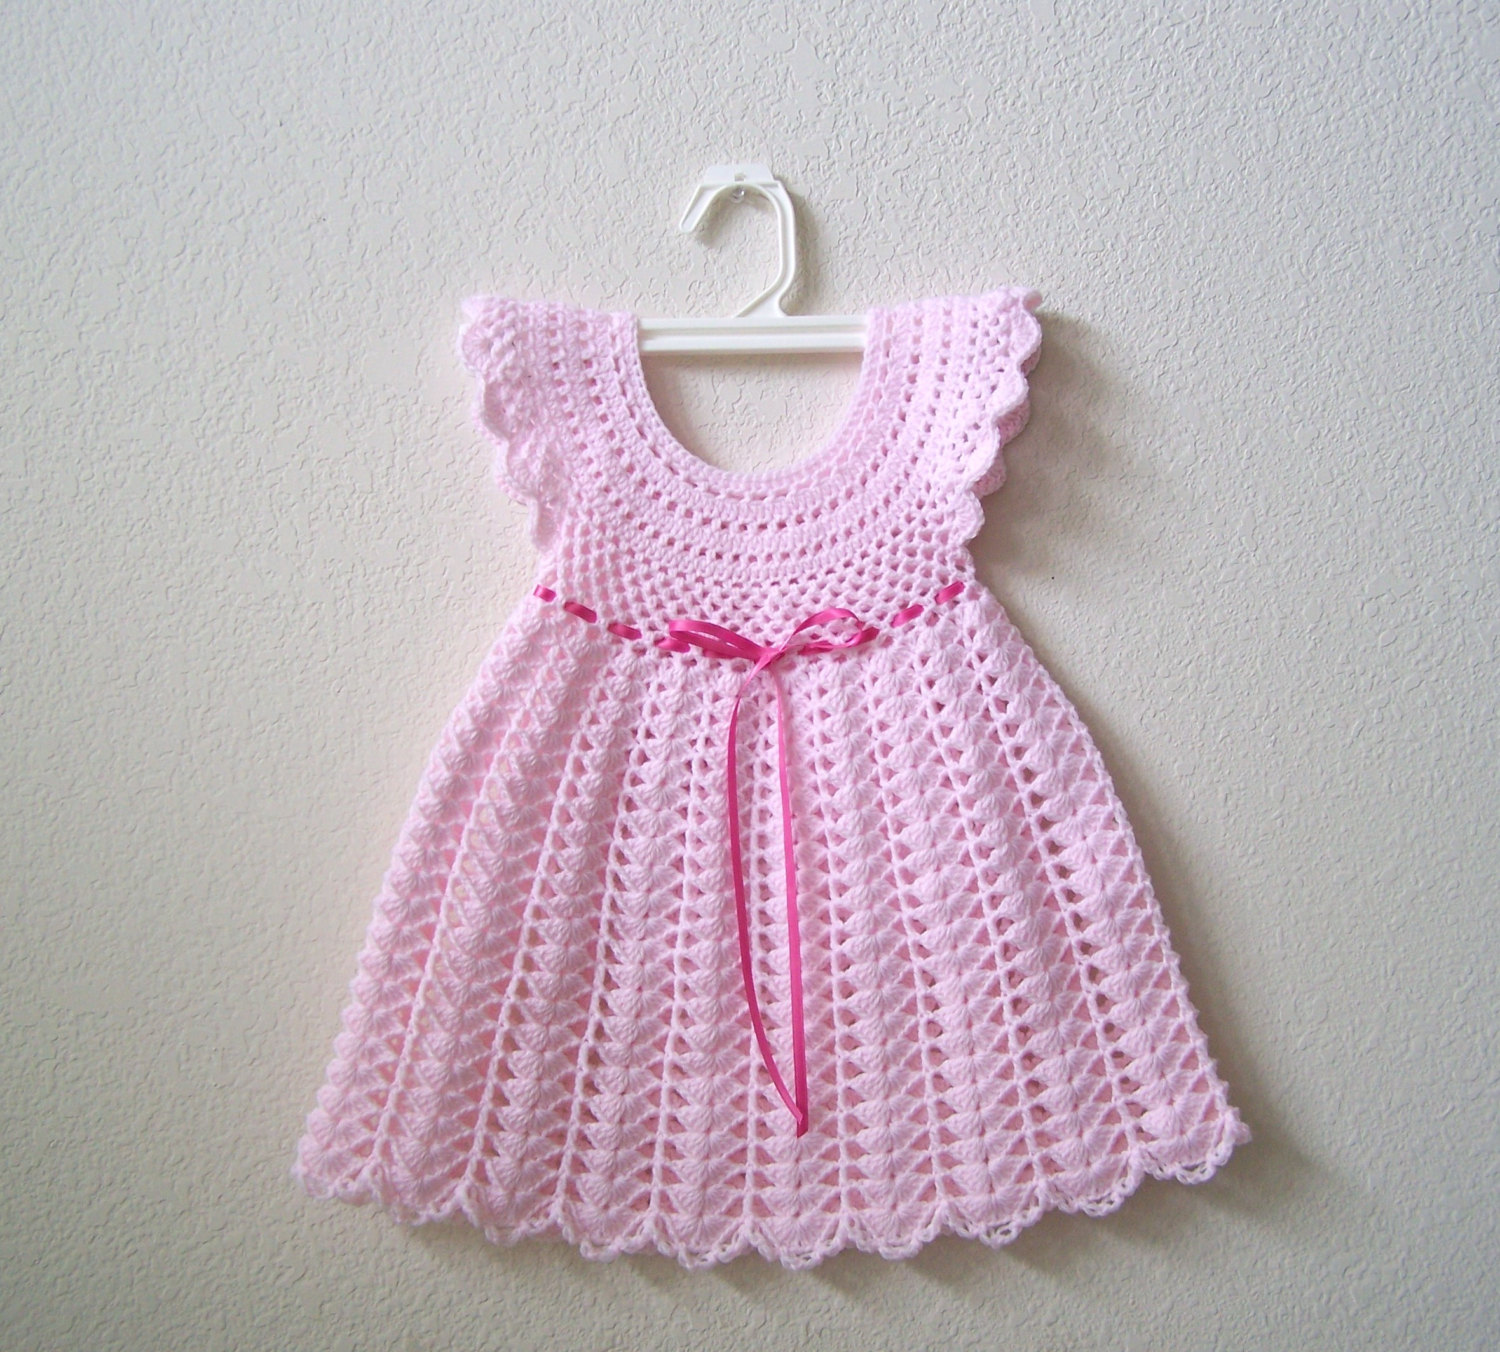 296ccdd12 Effective Tips To Buy Handmade Baby Clothes - Nice Watches For Men